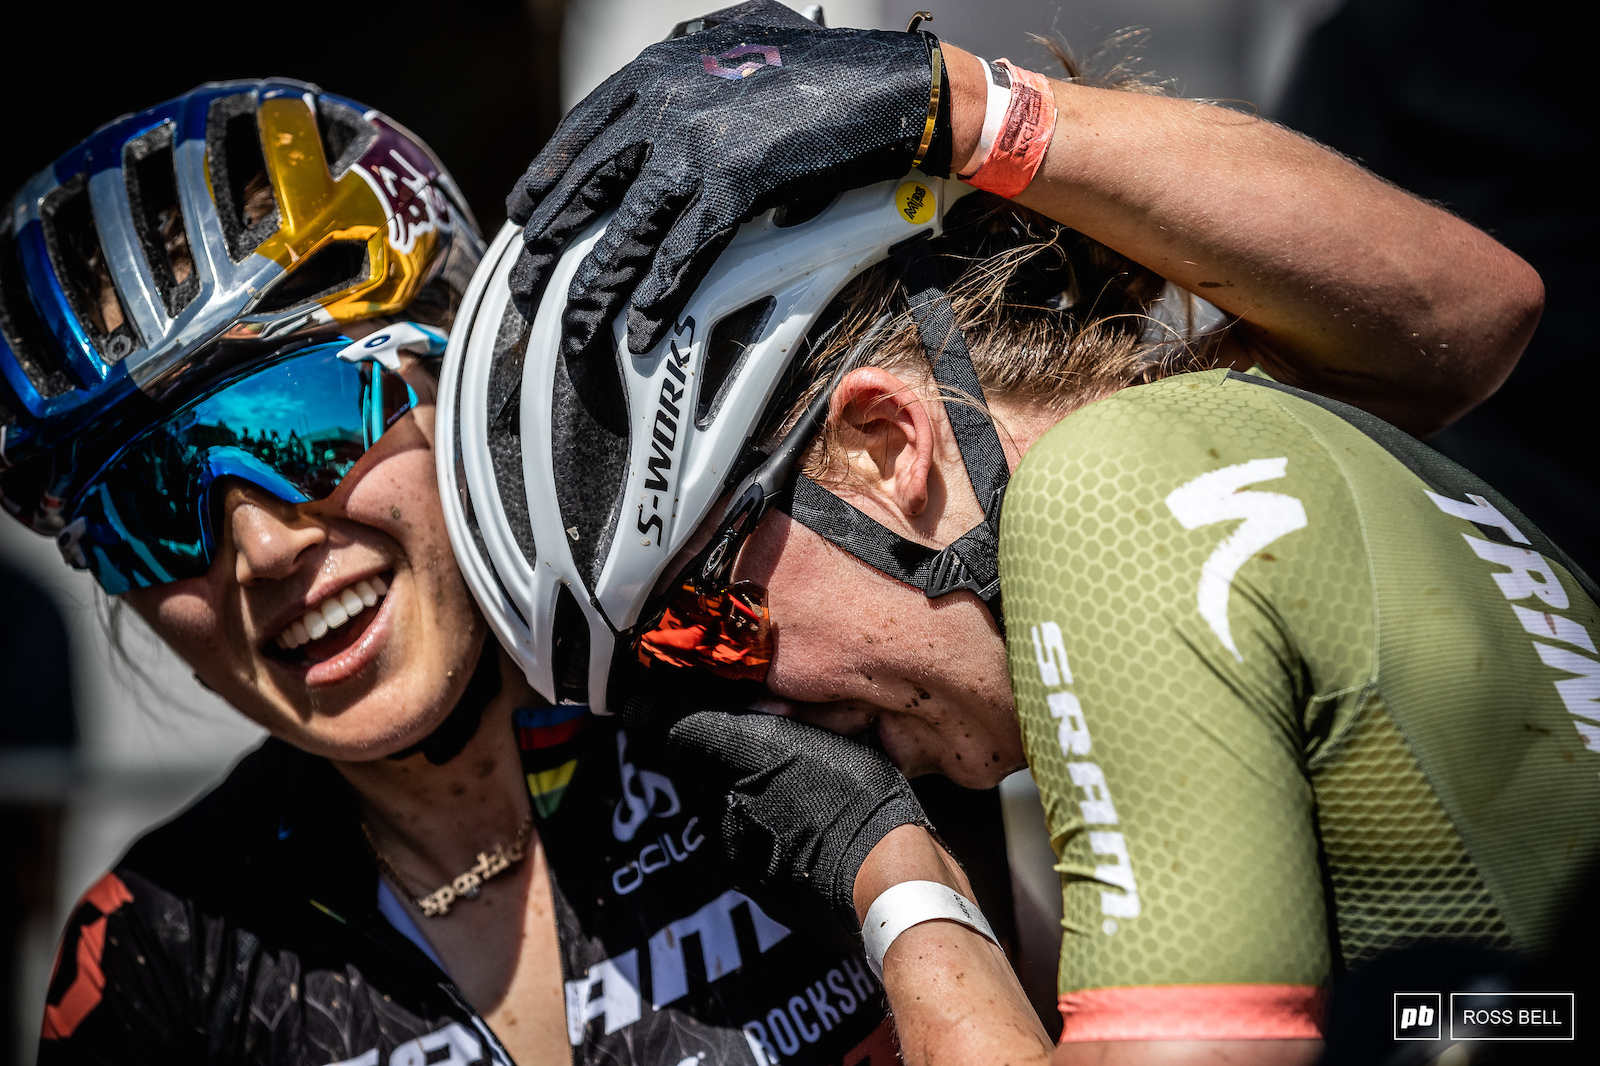 Kate Courtney was one of the first to congratulate Haley Batten on her ride to the podium.